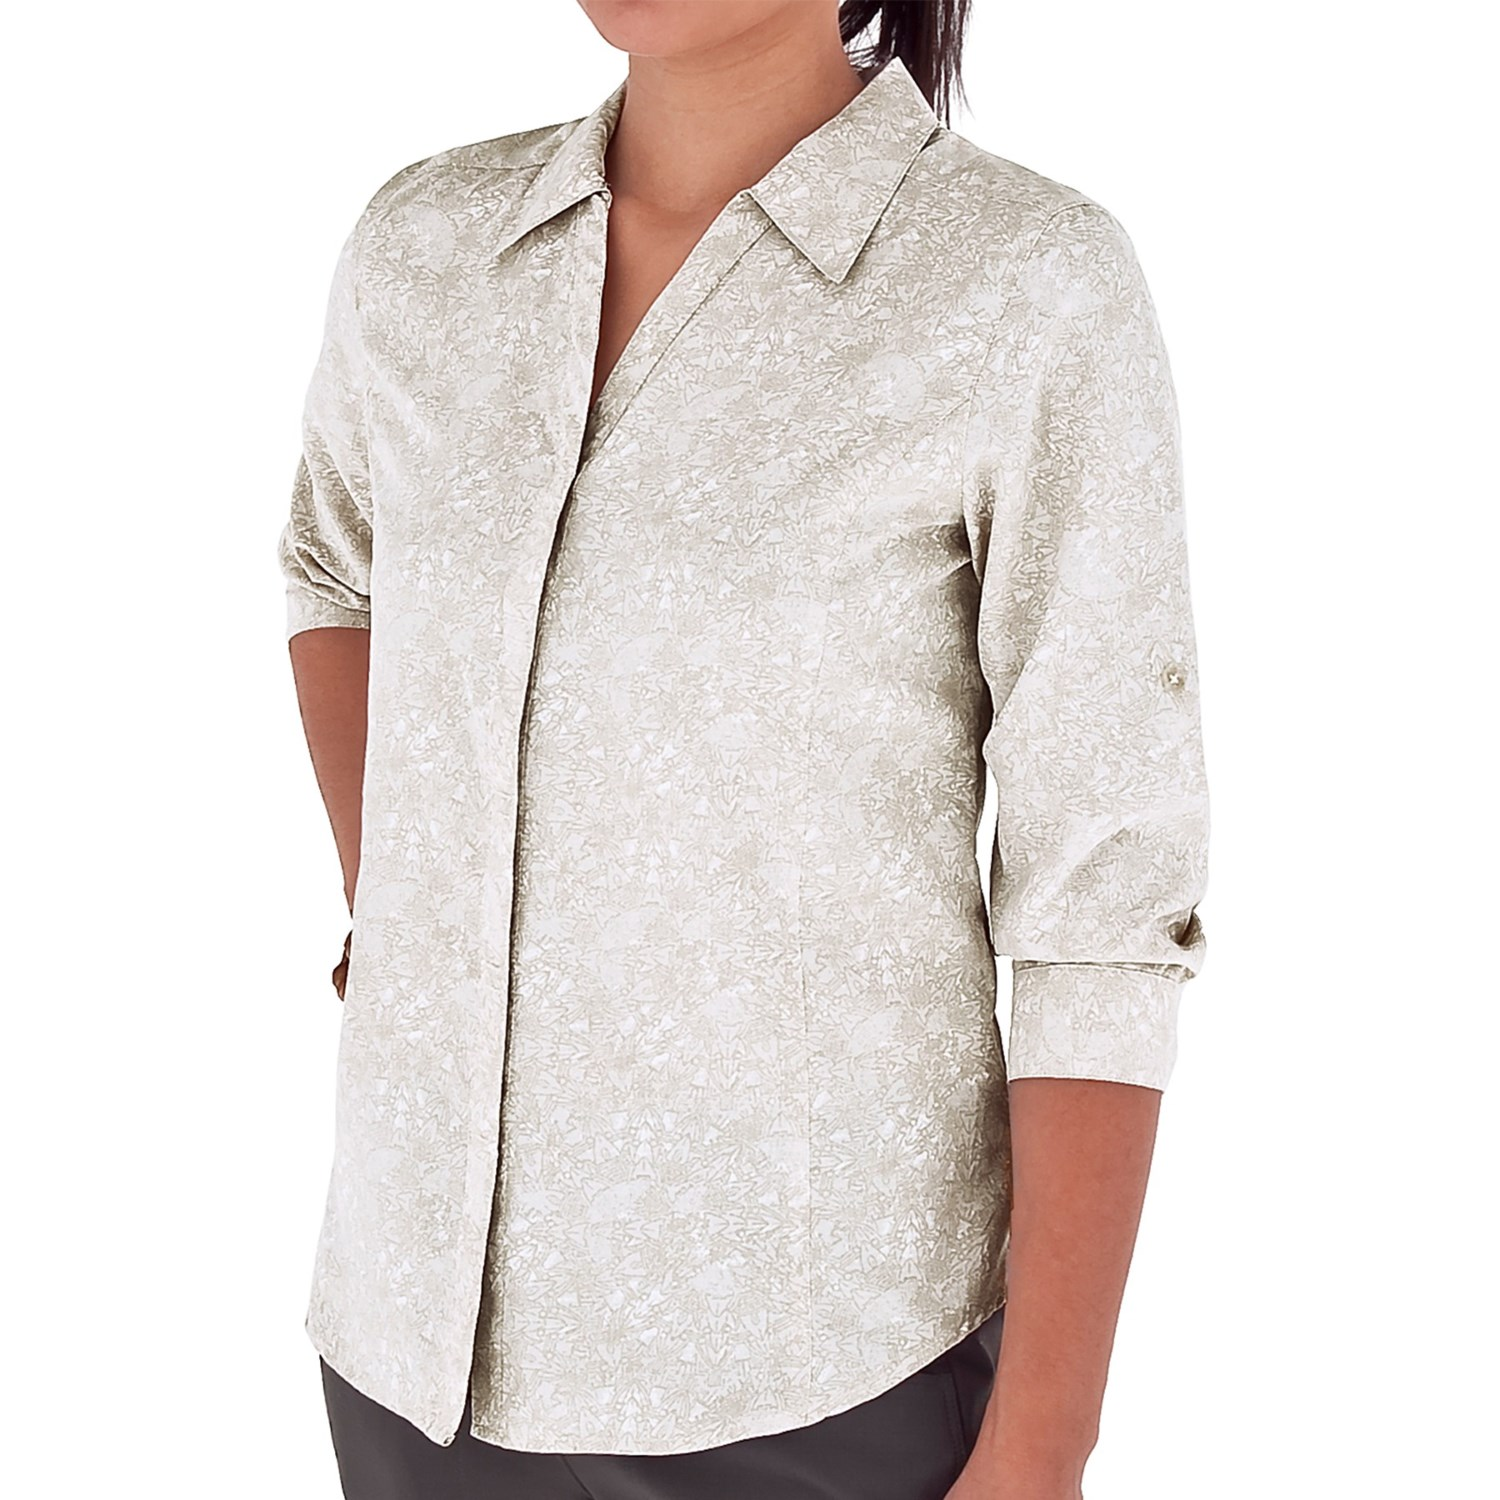 Royal robbins mayan shirt upf 50 3 4 sleeve for women for Royal robbins expedition shirt 3 4 sleeve women s